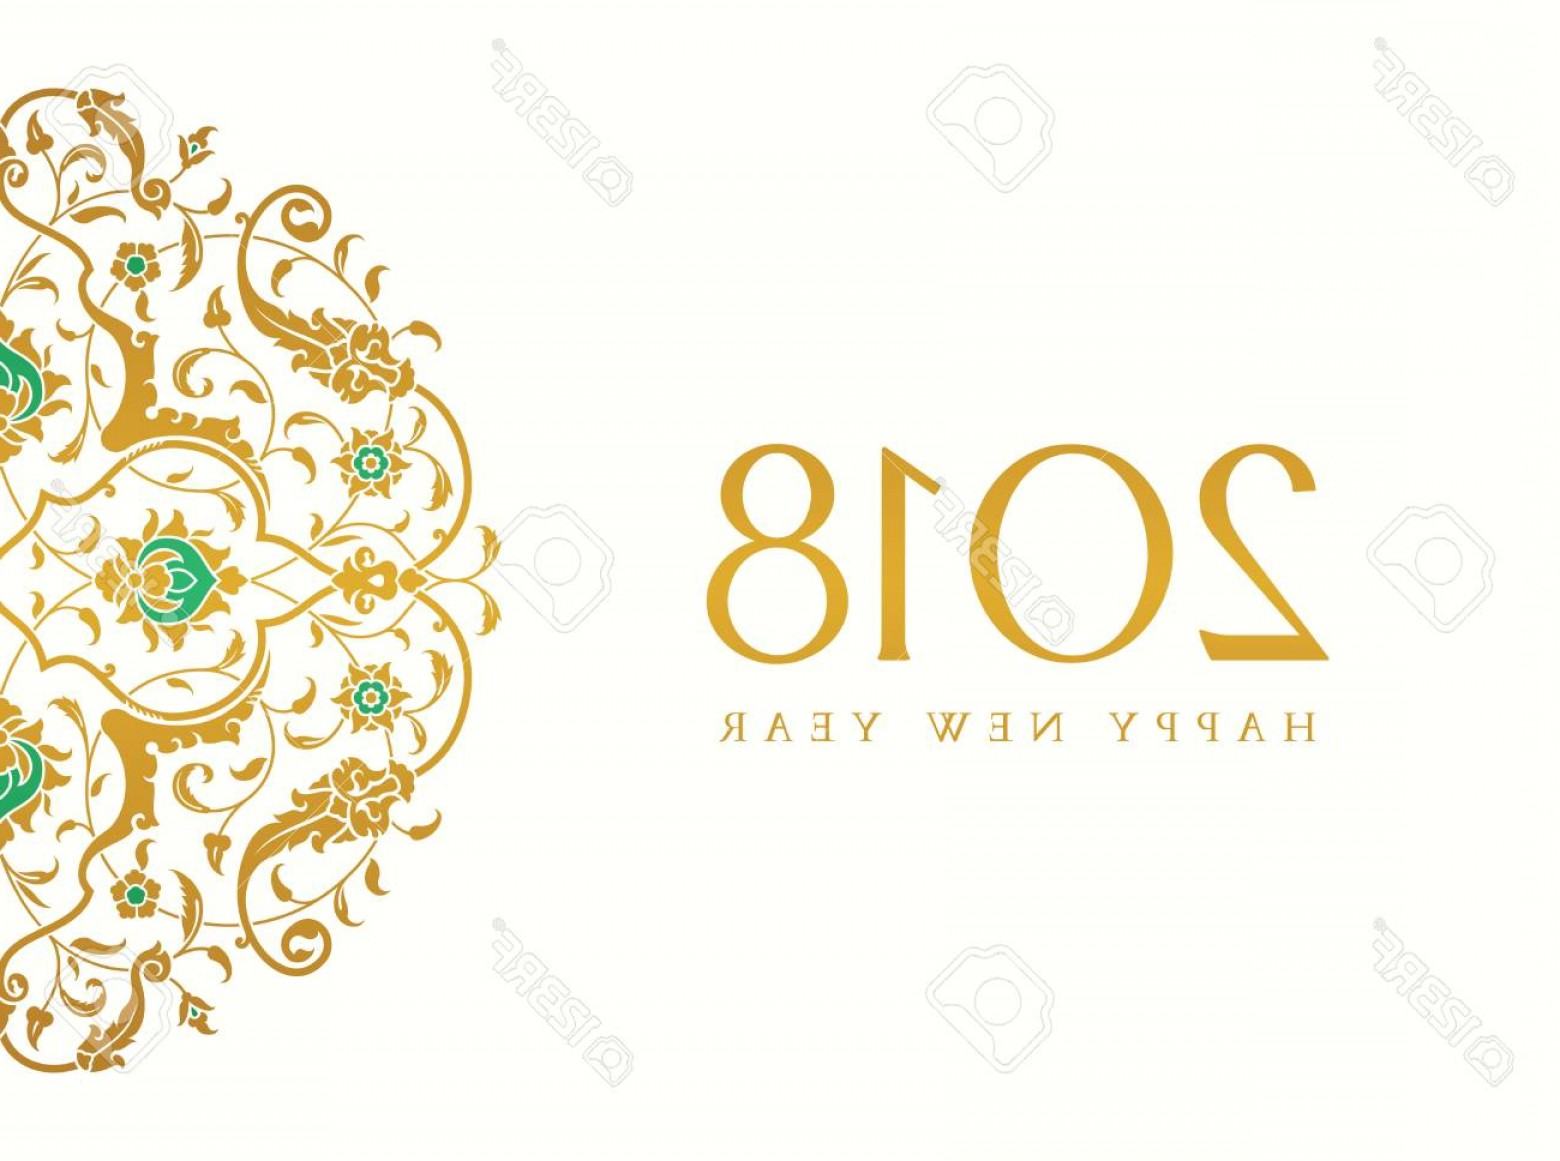 Vector-Based Christmas: Photostock Vector Merry Christmas And Happy New Year Art Based On Traditional Orient Floral Pattern Use For Banne